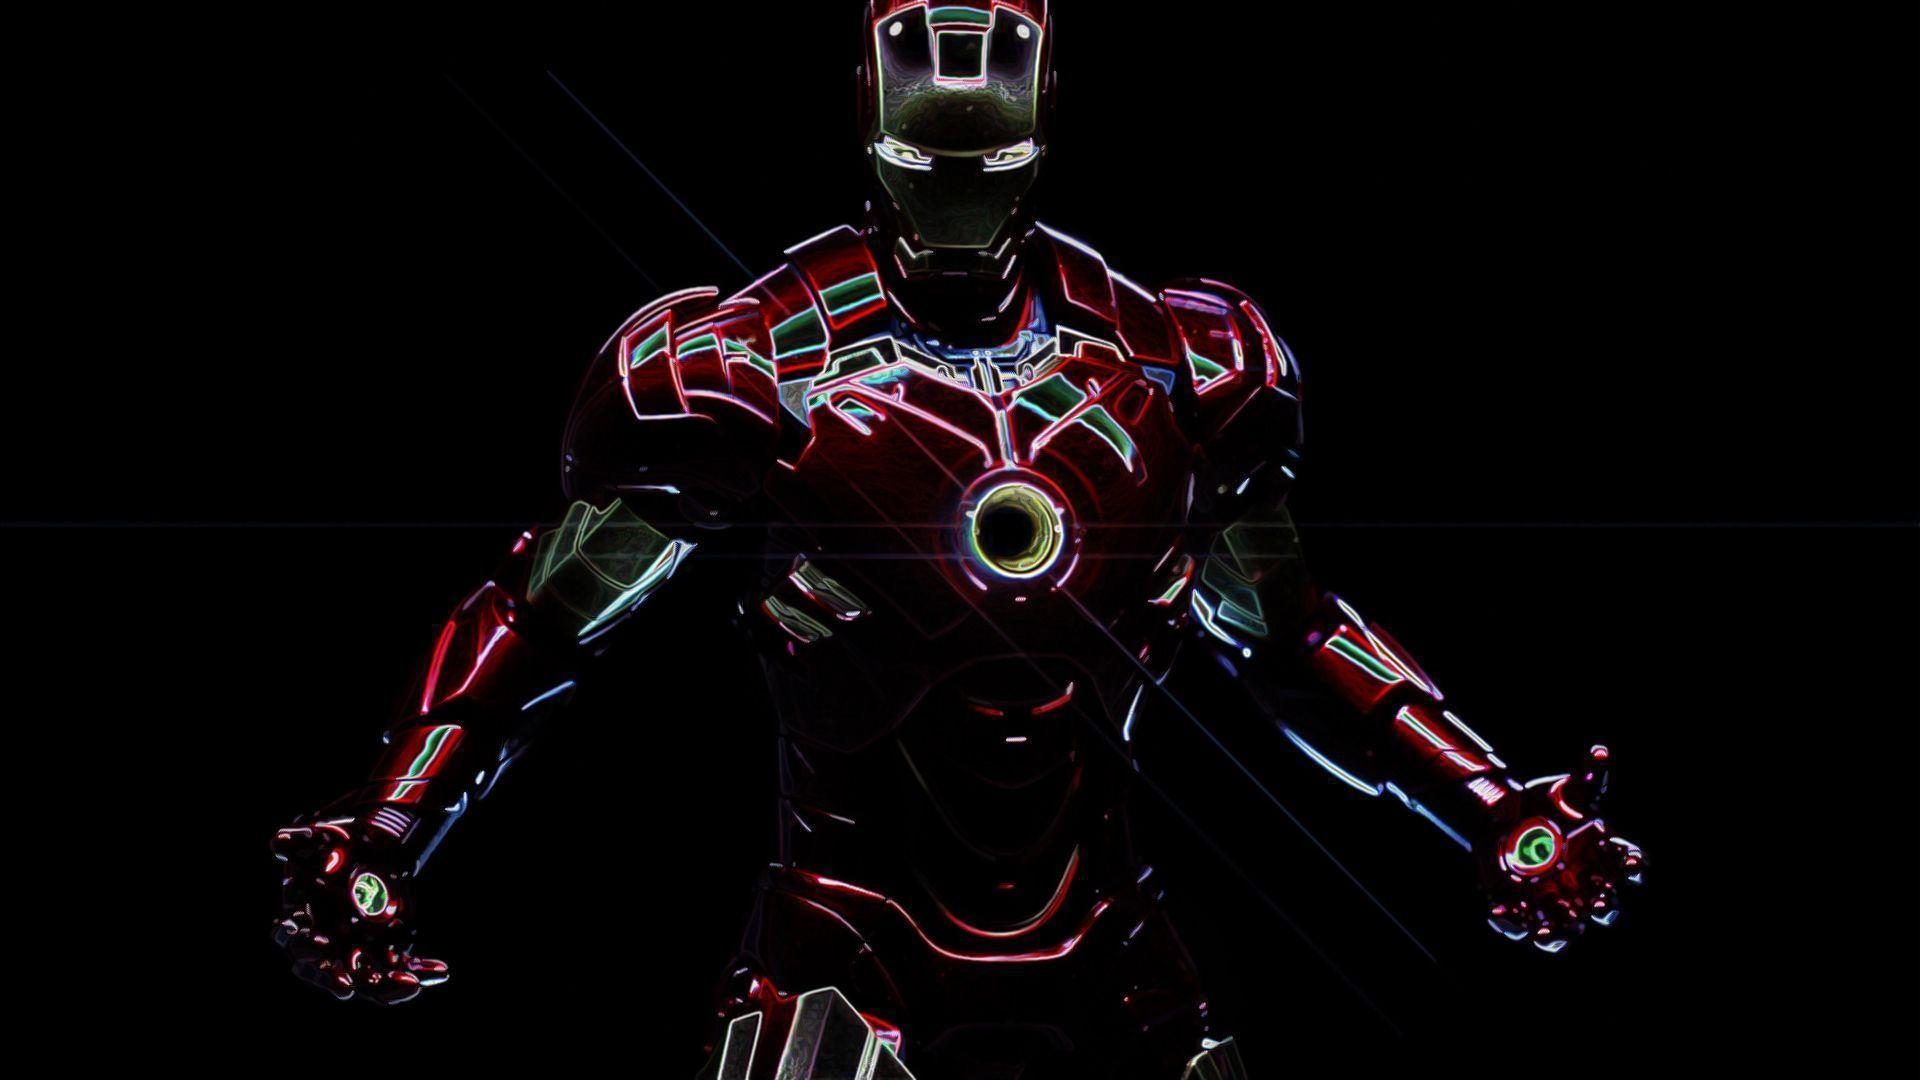 Ironman Artwork #9718 Desktop Wide | Goodwallpaperdesktop.